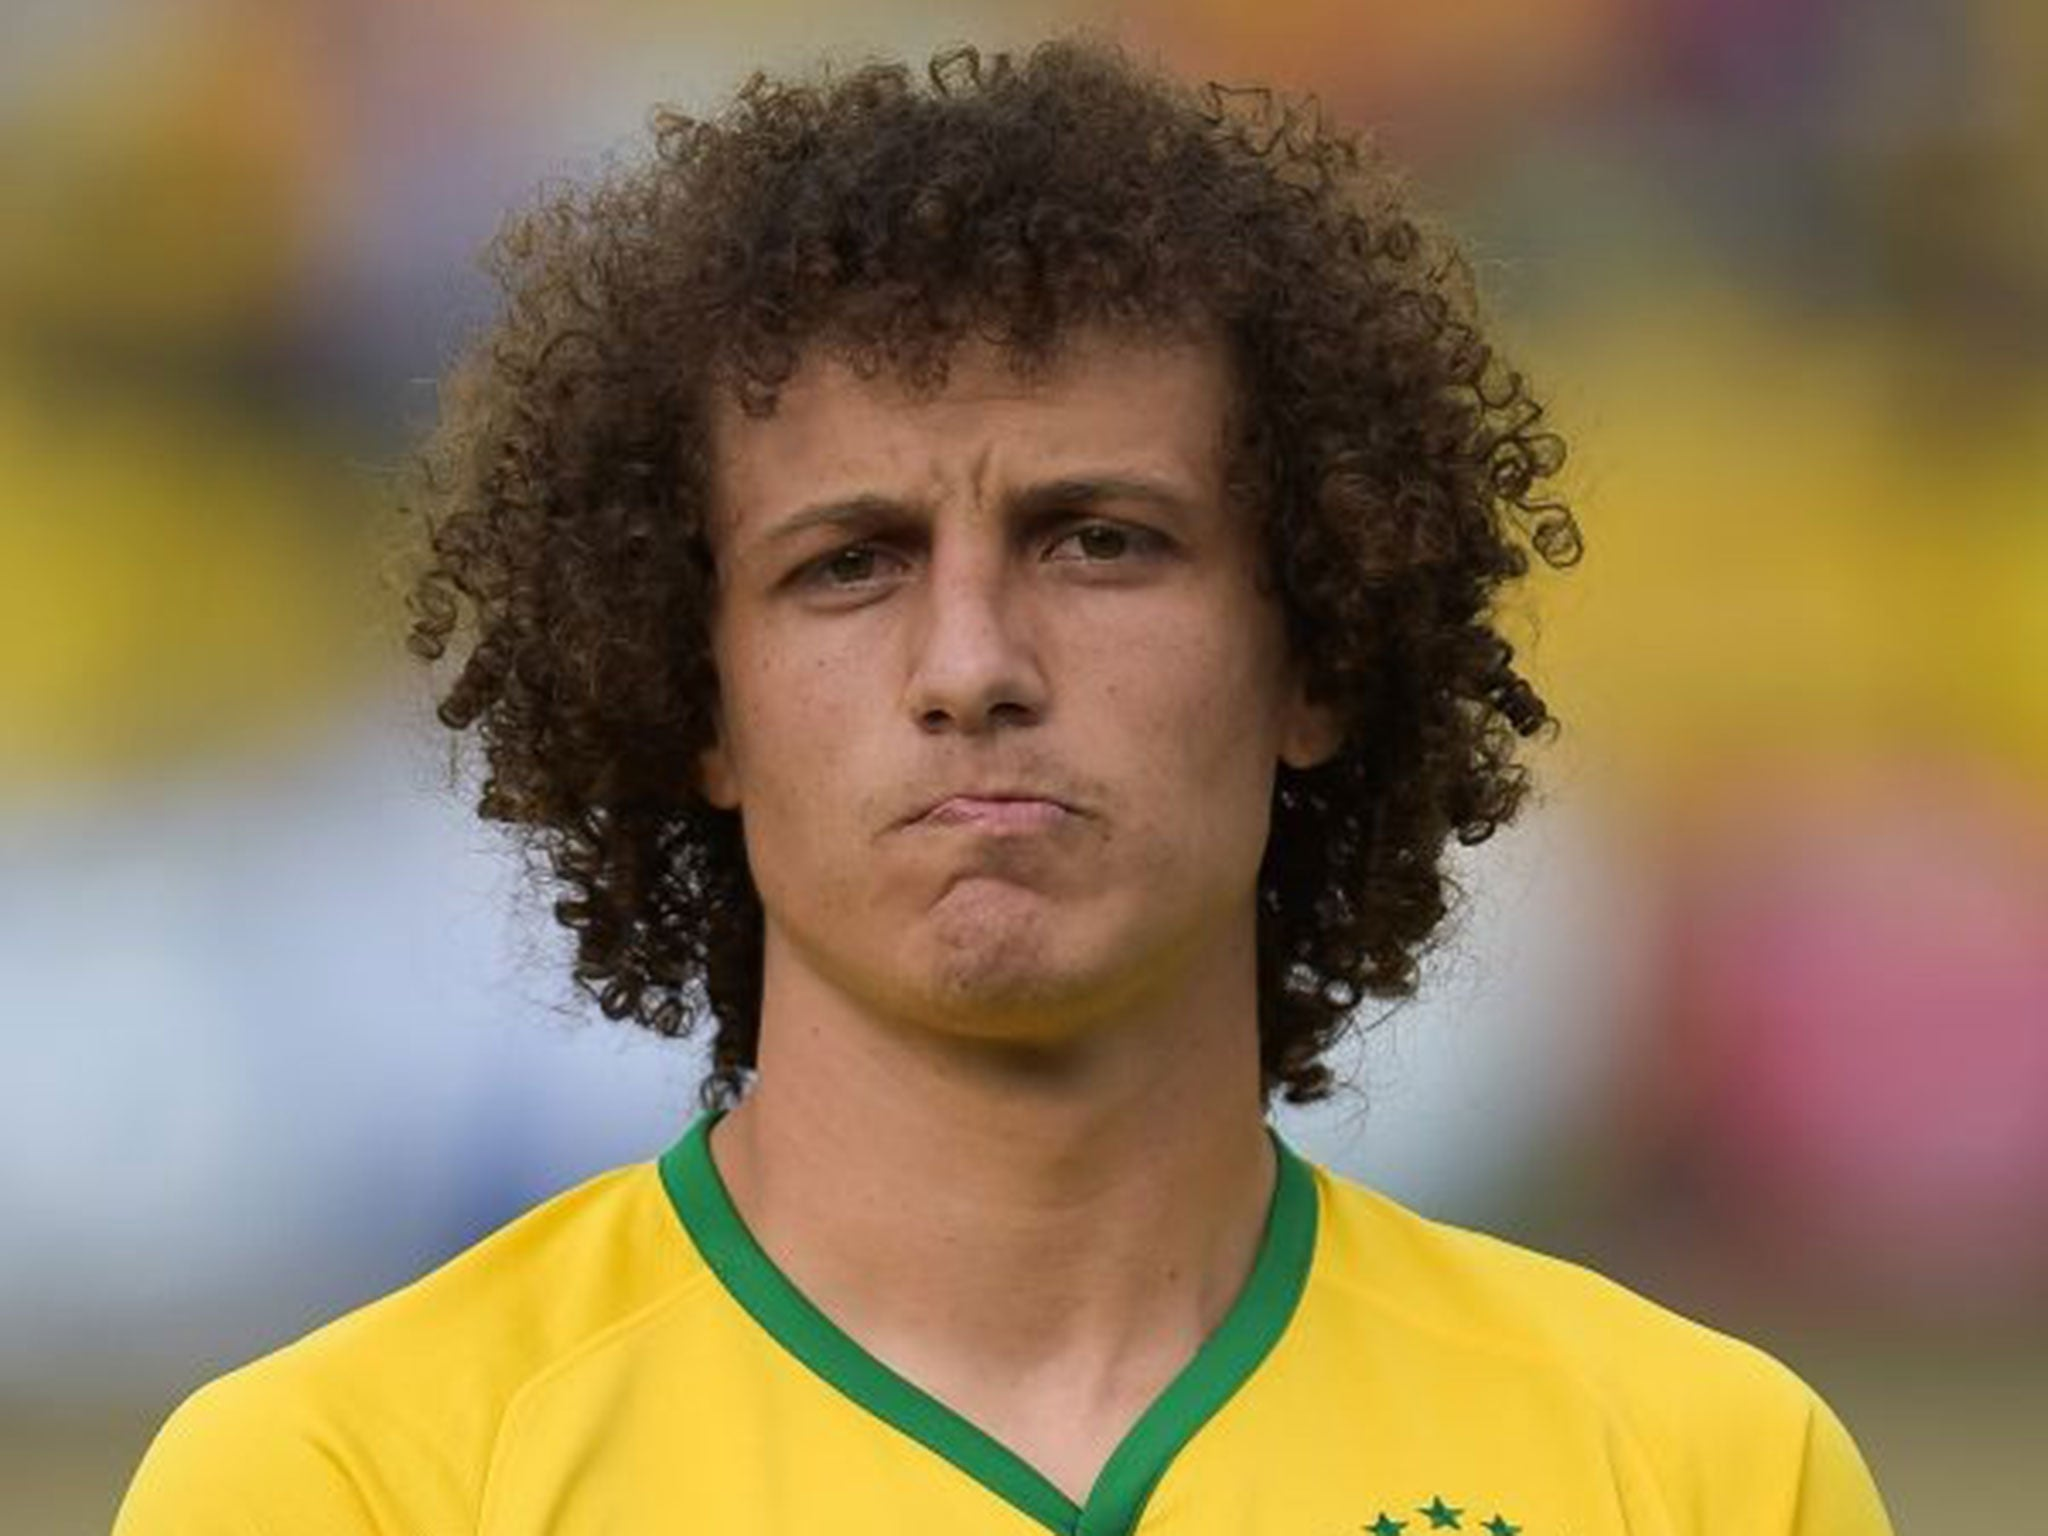 David Luiz earned a 4 million dollar salary - leaving the net worth at 9 million in 2017